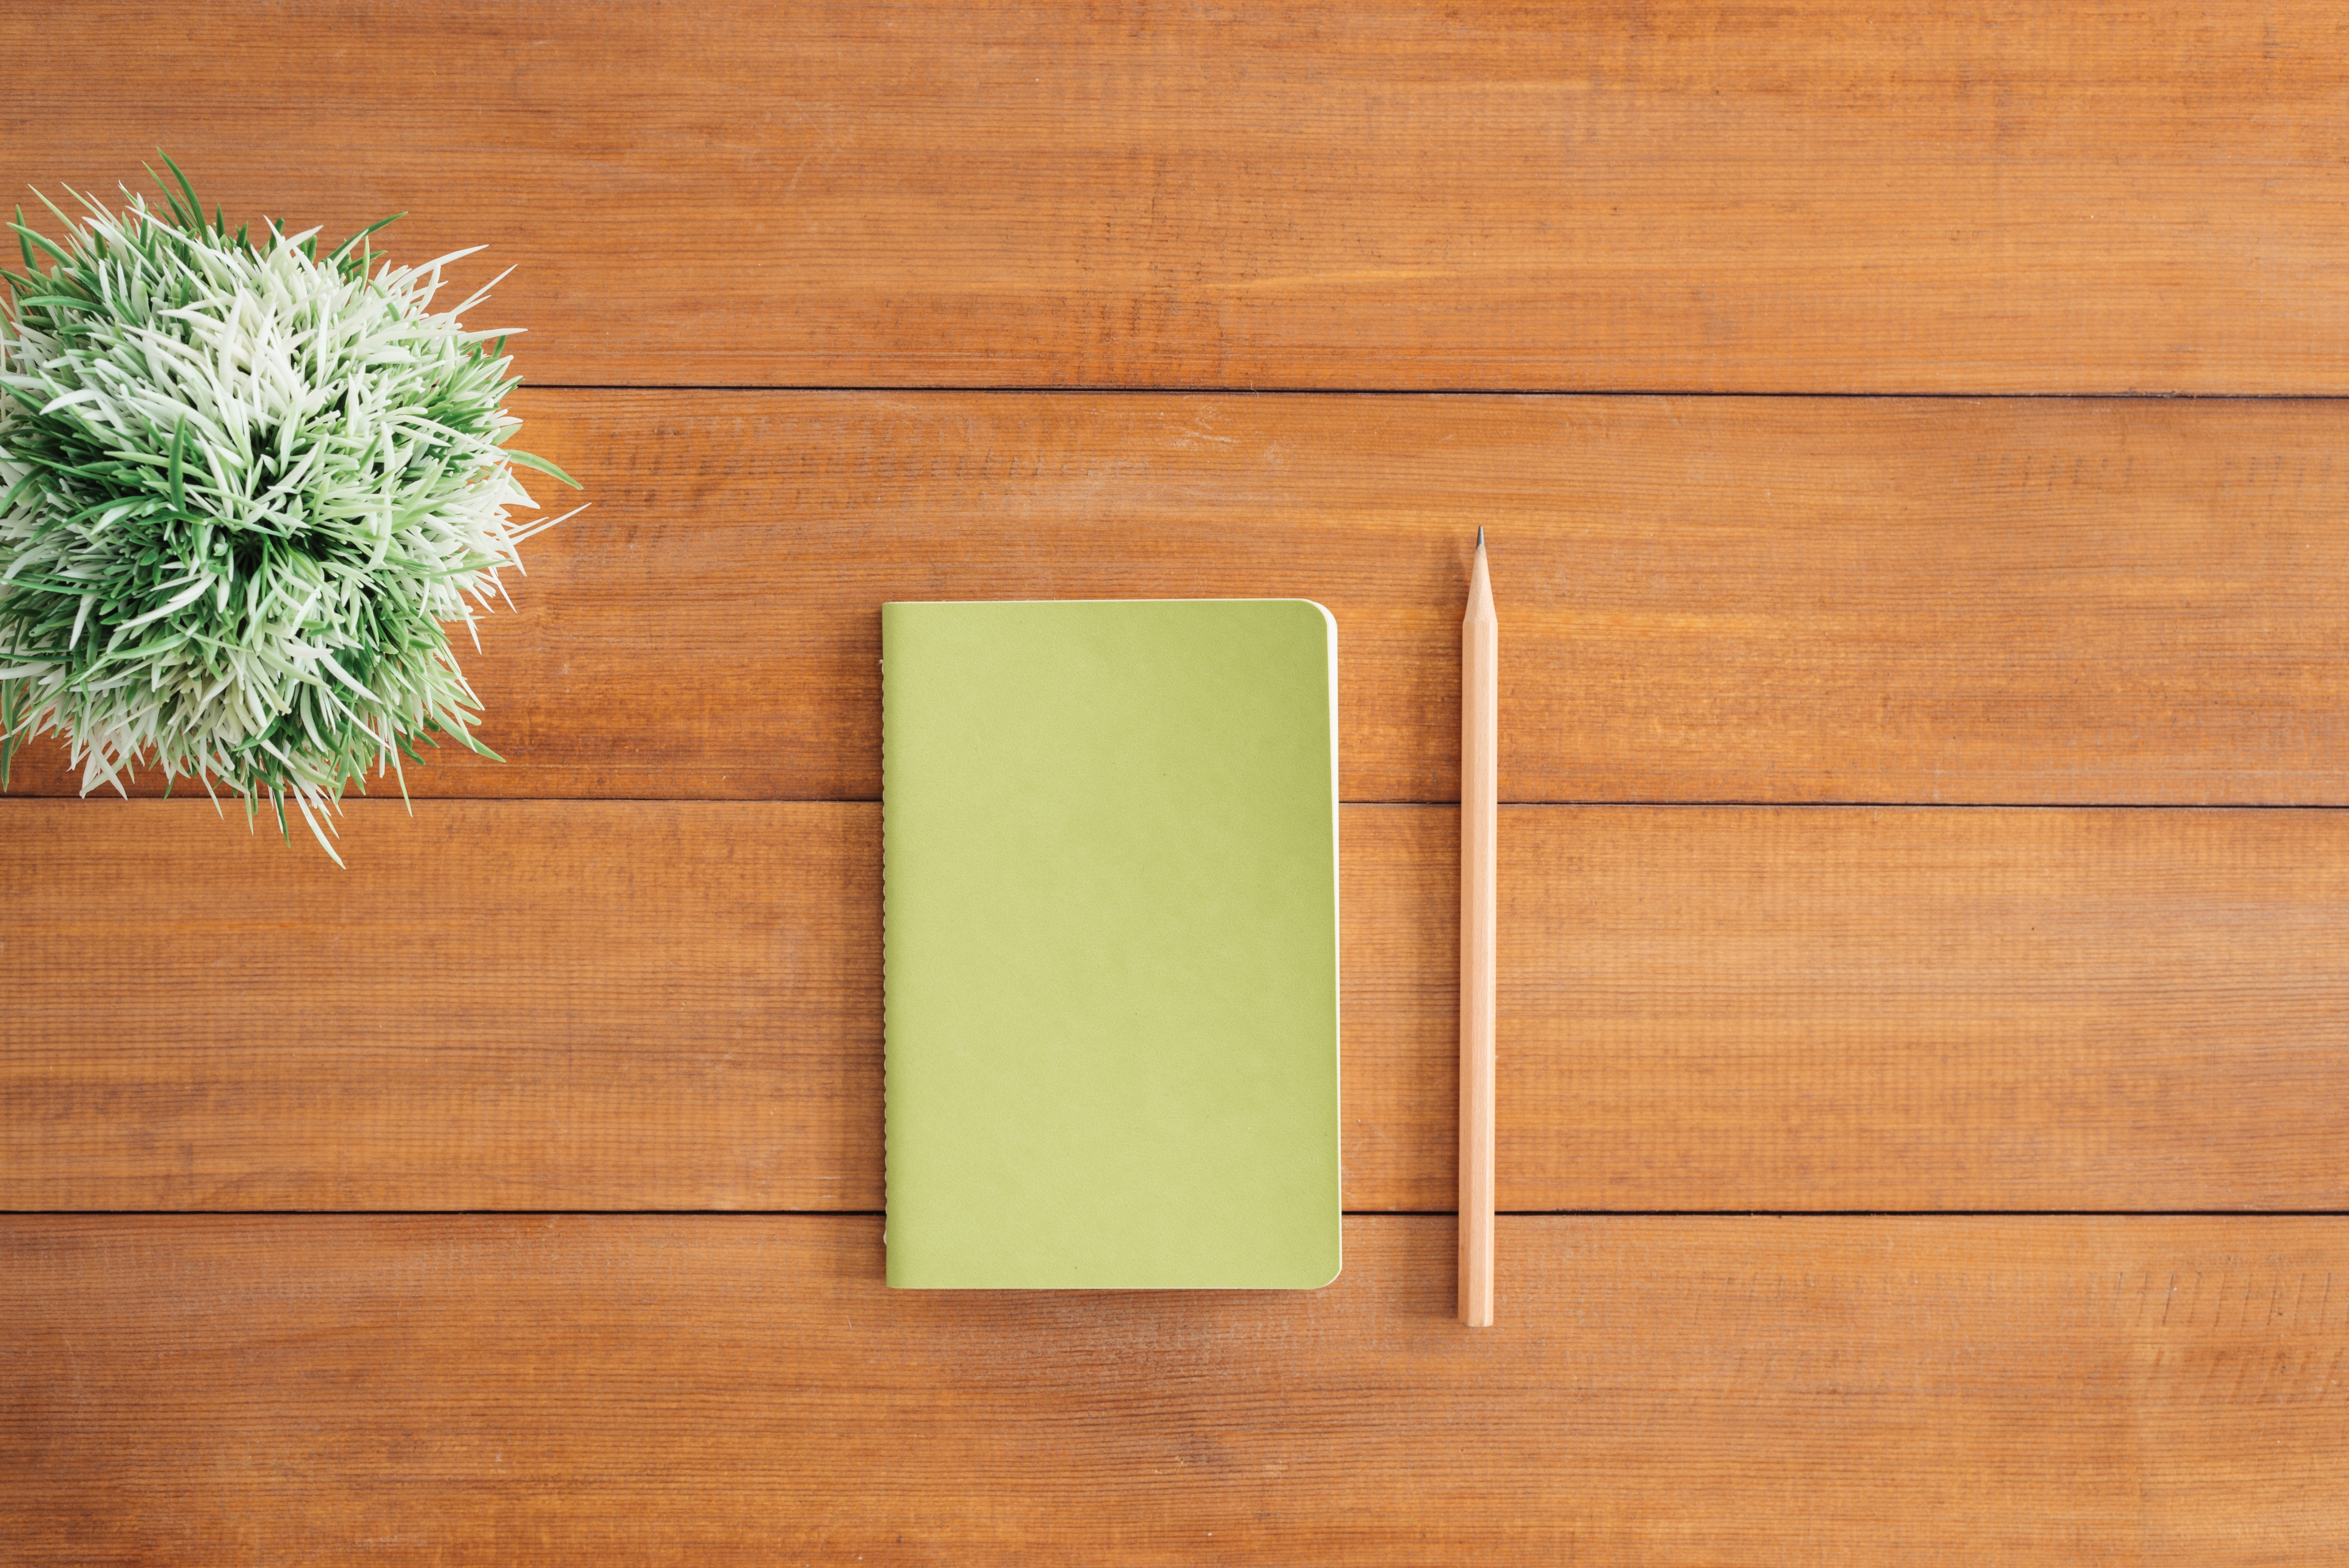 White Notes Beside a Pencil on Brown Wooden Surface, Background, Notepad, Work, Wooden, HQ Photo